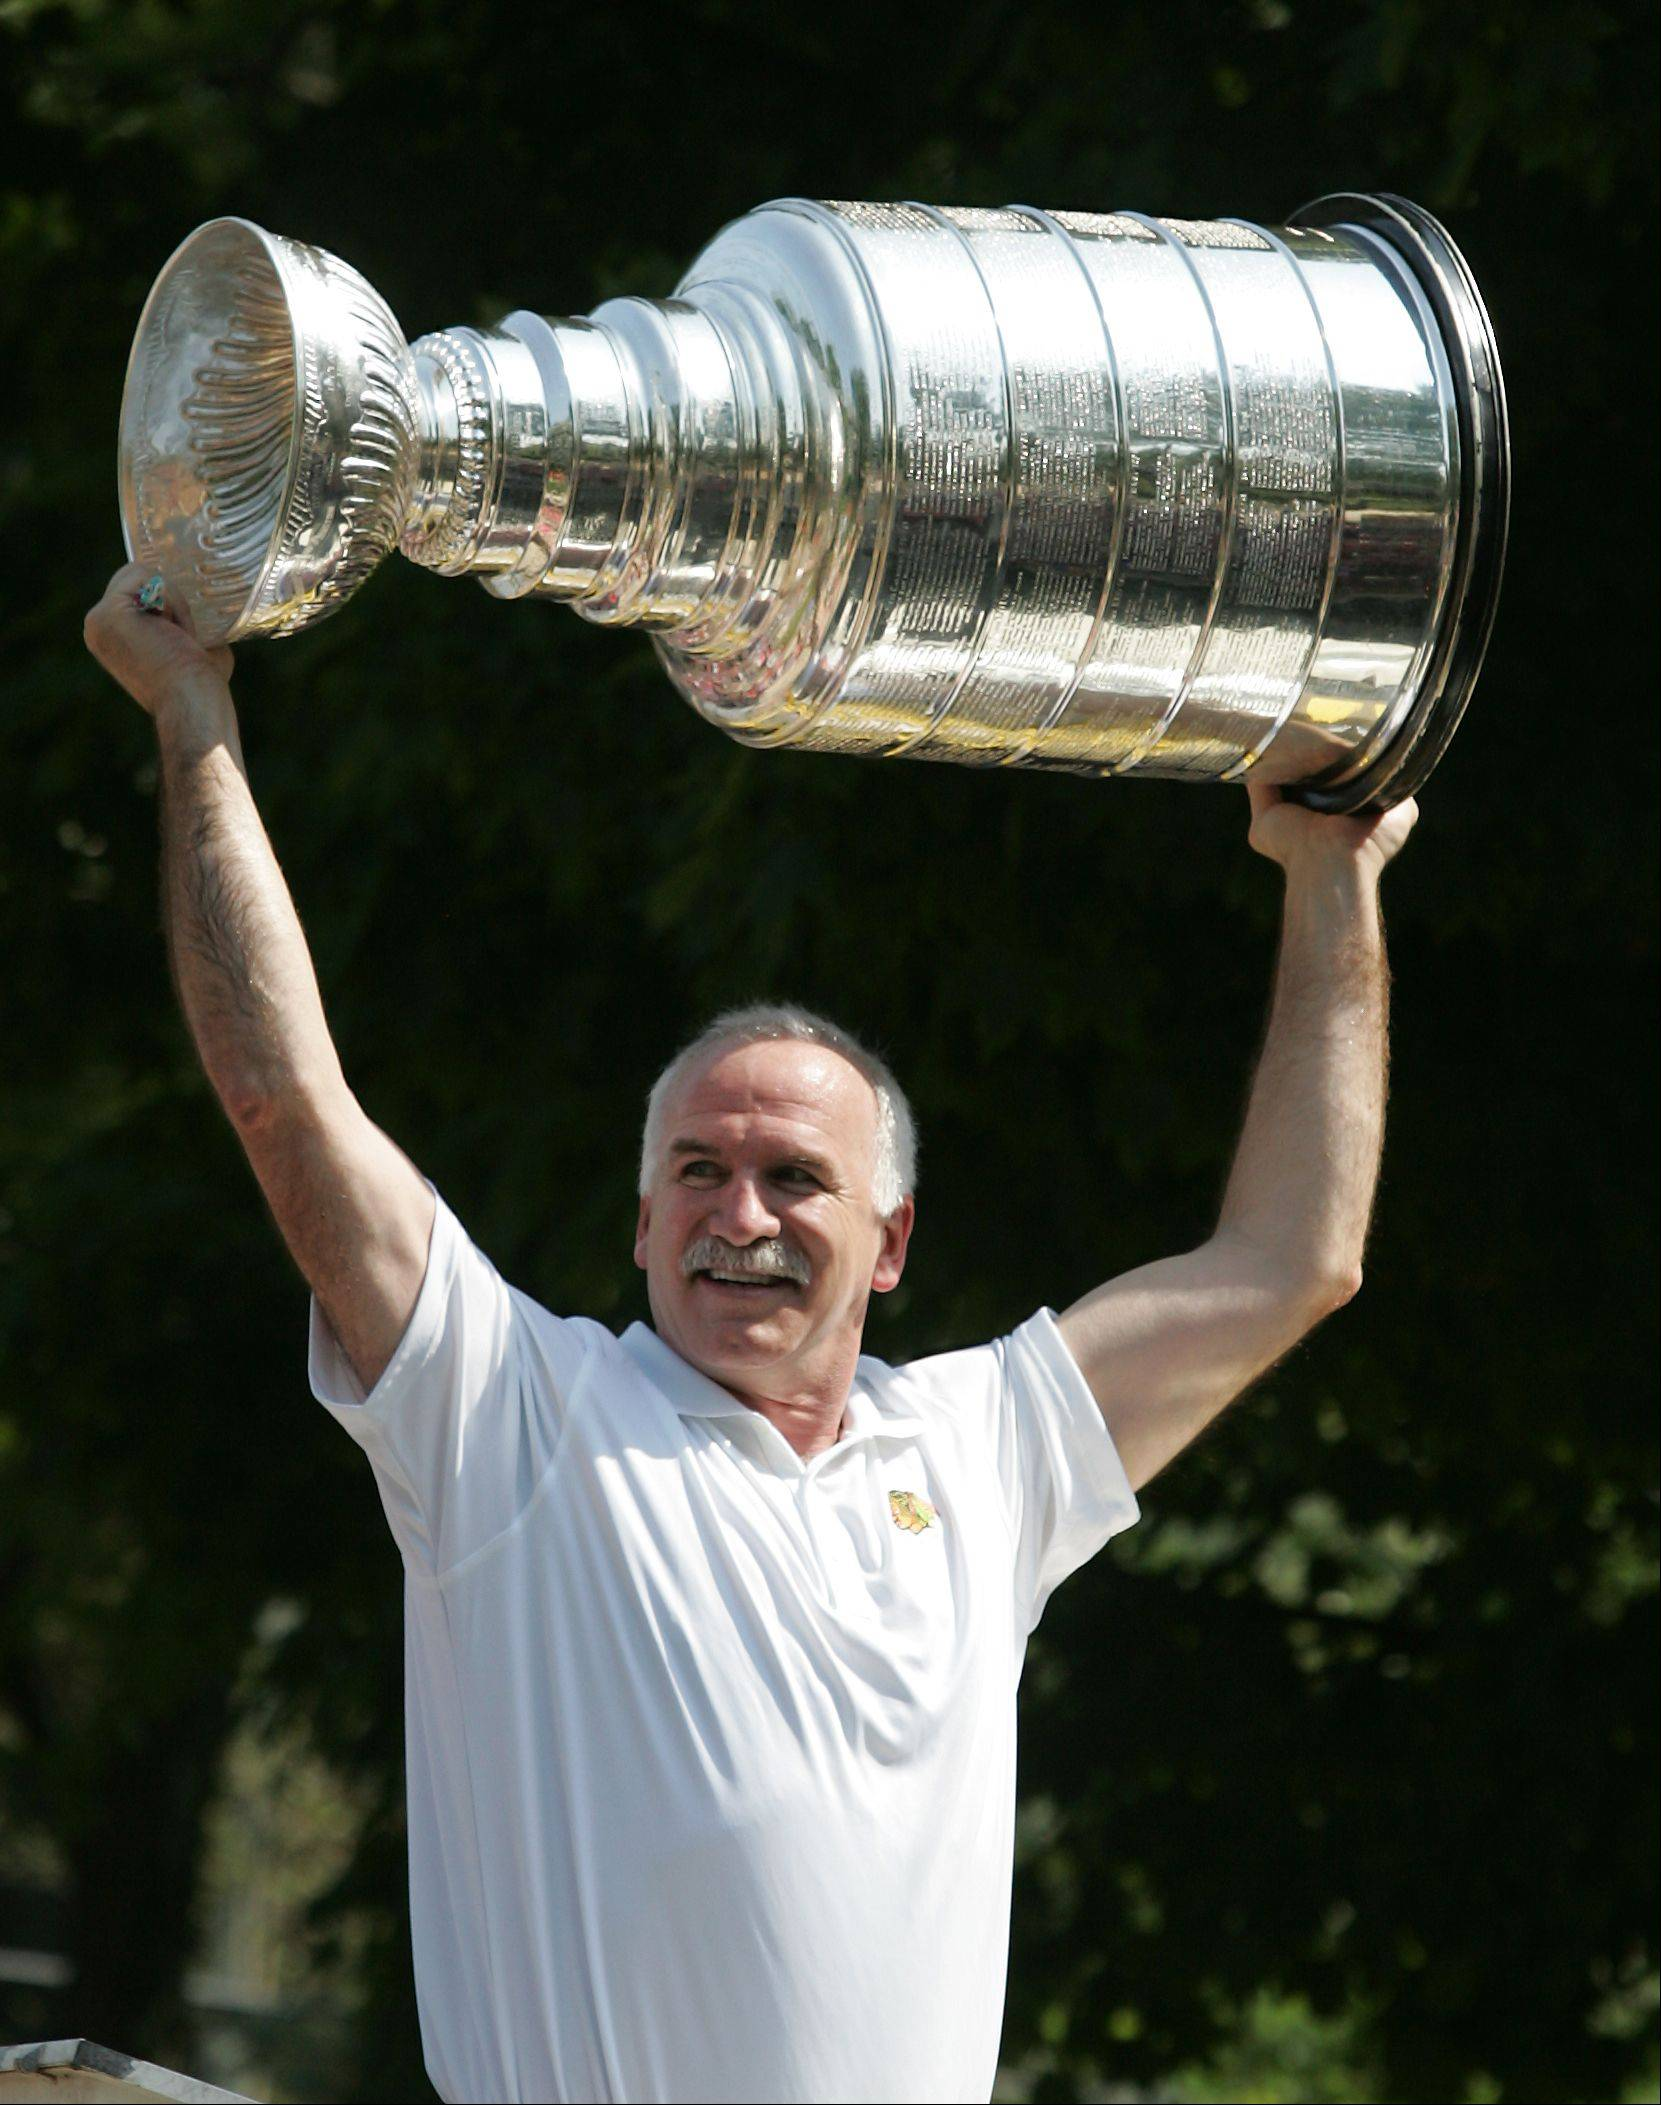 Daniel White/dwhite@dailyherald.com � Chicago Blackhawk coach Joel Quenneville celebrates a Stanley Cup victory, as the grand marshall thrills his hometown Hinsdale July 4th parade route.